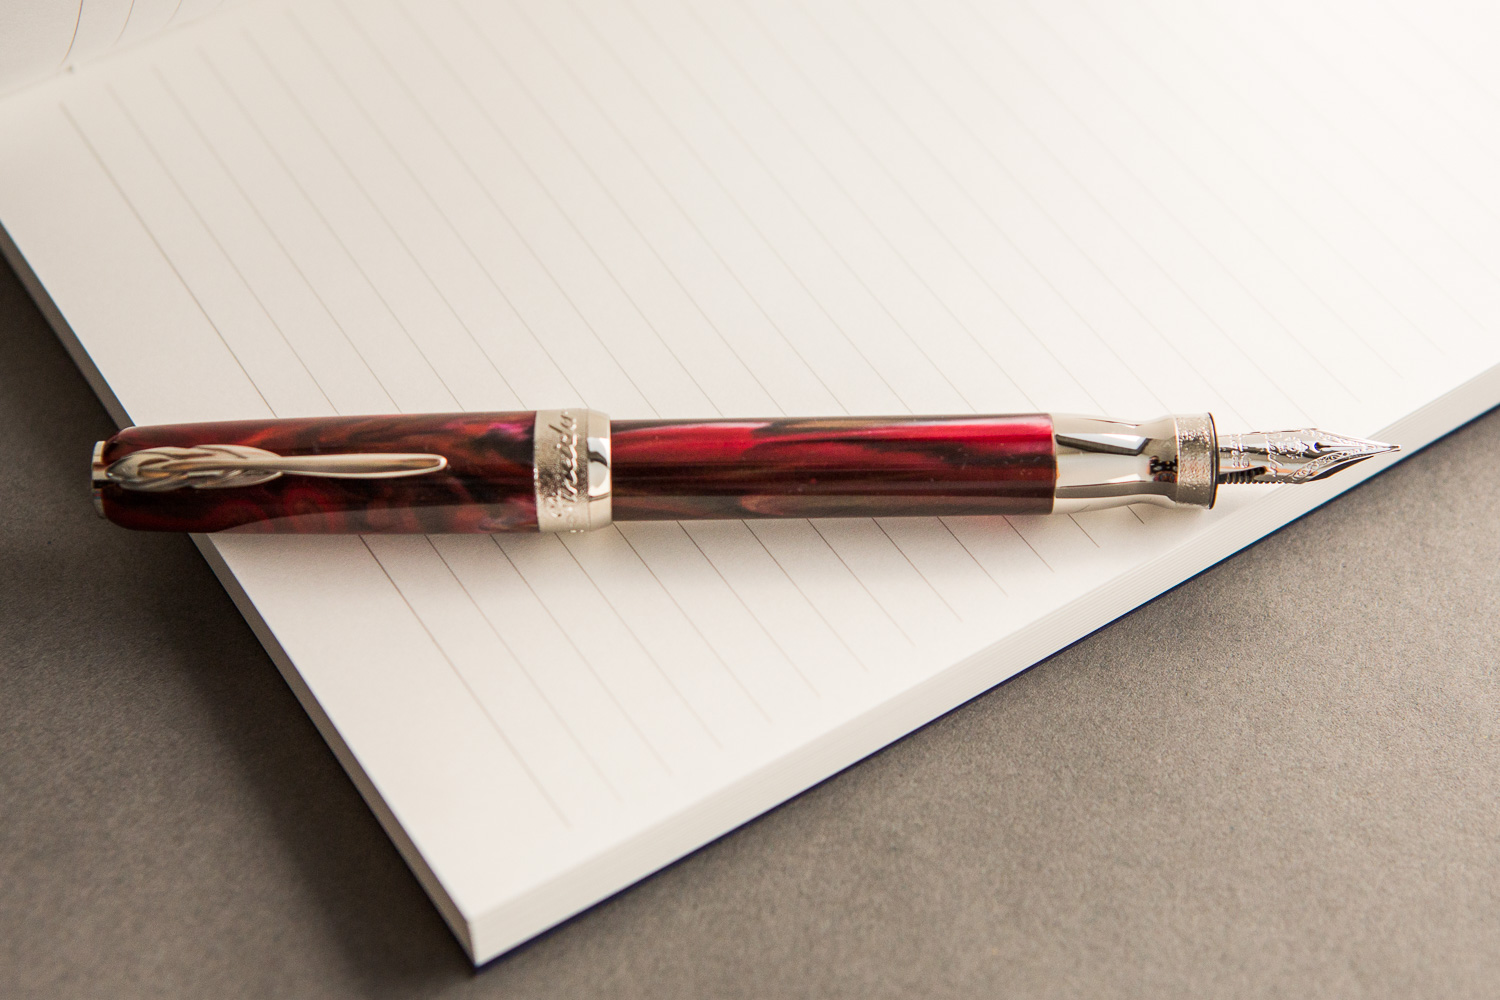 Pineider La Grande Bellezza Fountain Pen- Rodolite Red